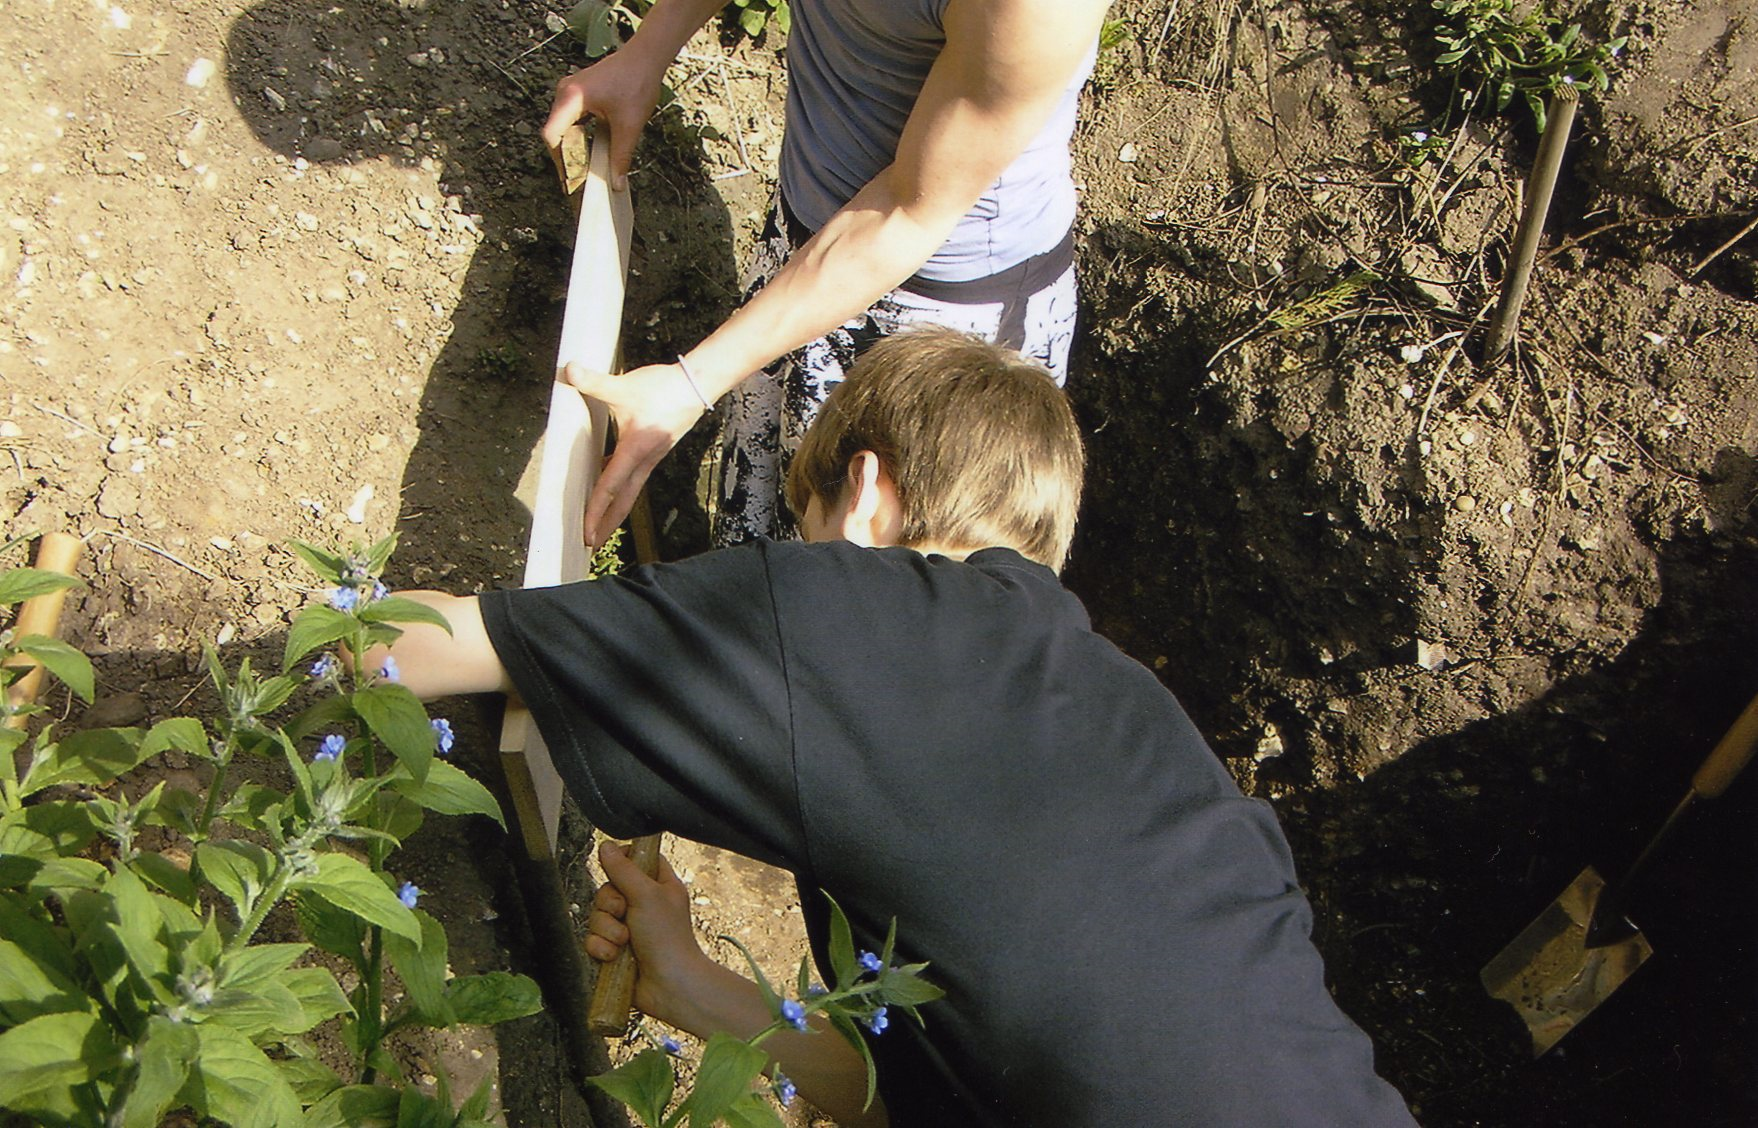 A photo of 2 pupils outside digging a hole in the ground